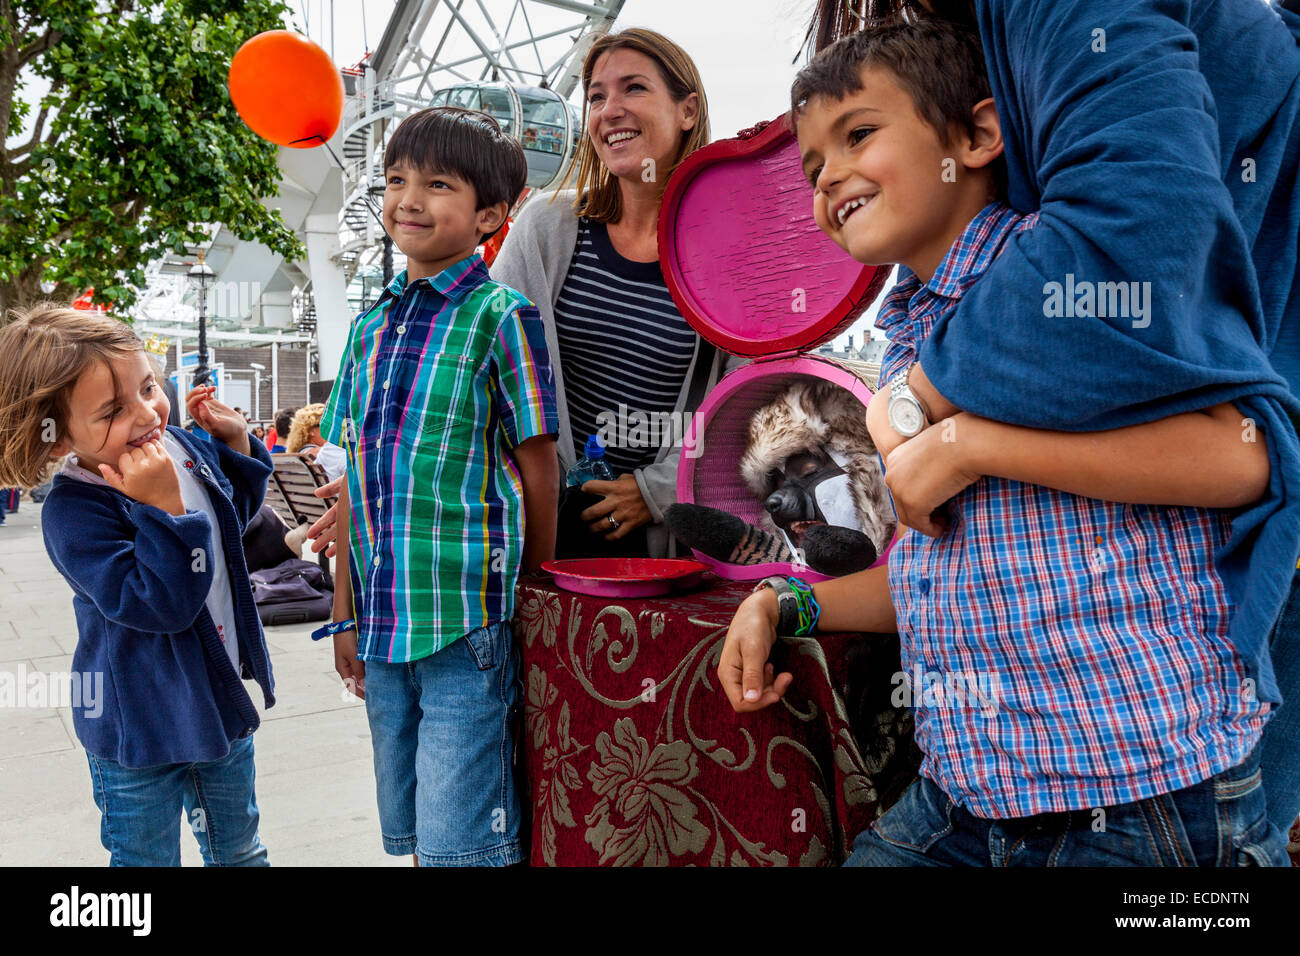 Eine Familie posiert mit A Street Entertainer auf der South Bank, London, England Stockfoto